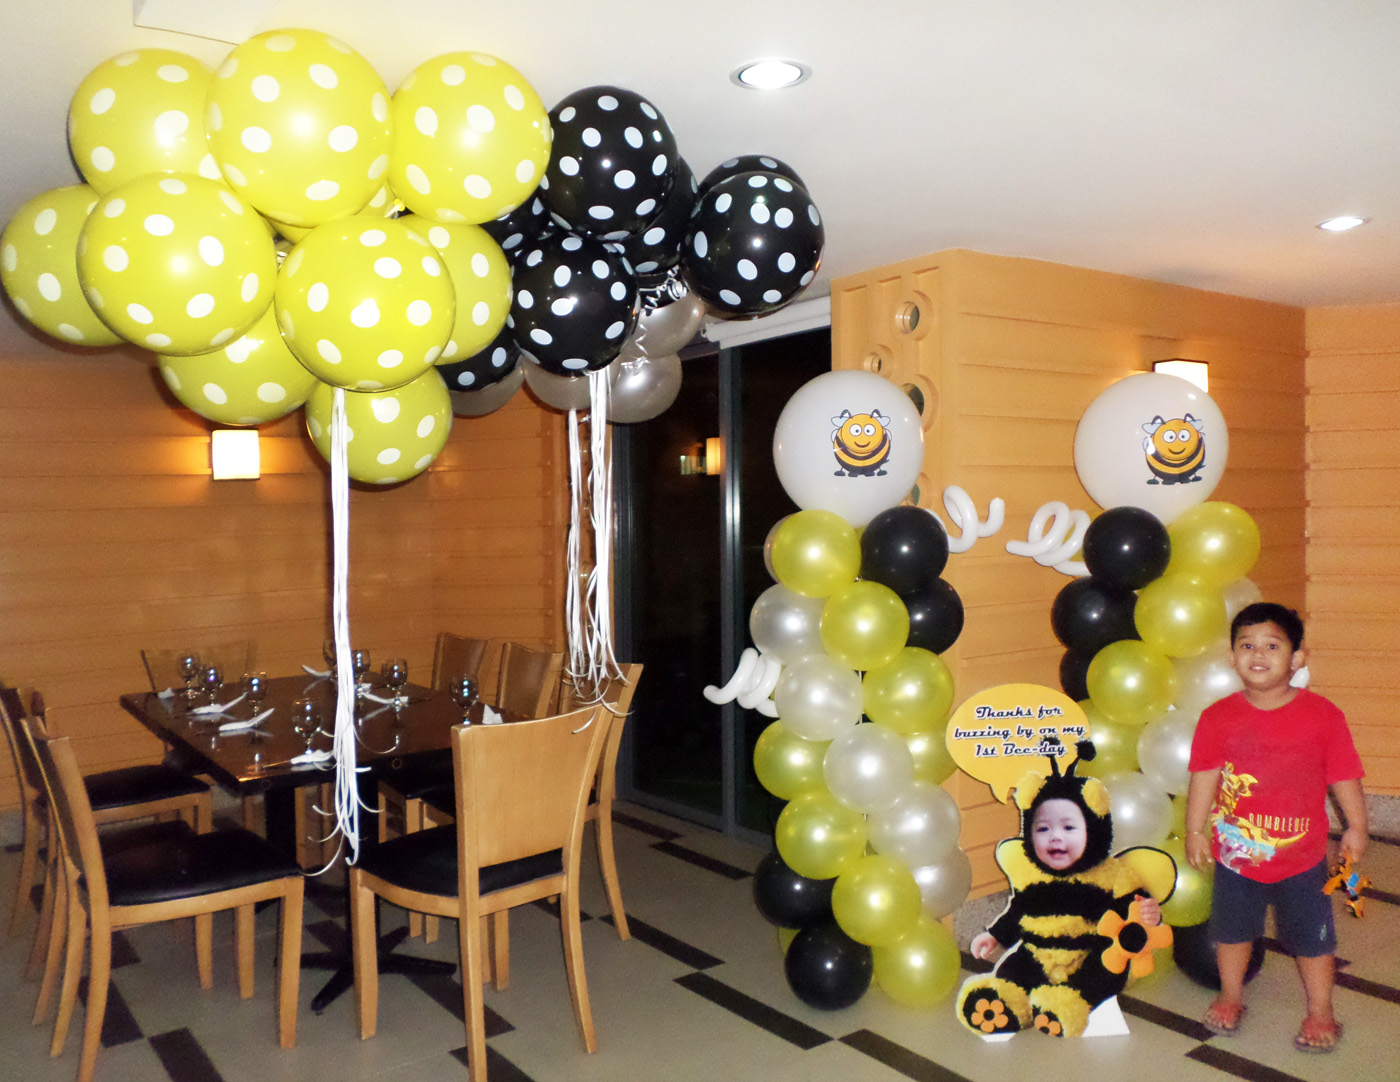 Bumble Bee Balloon Decoration With Celebrant Standee At City Suites Ramos Dish Bar Lounge